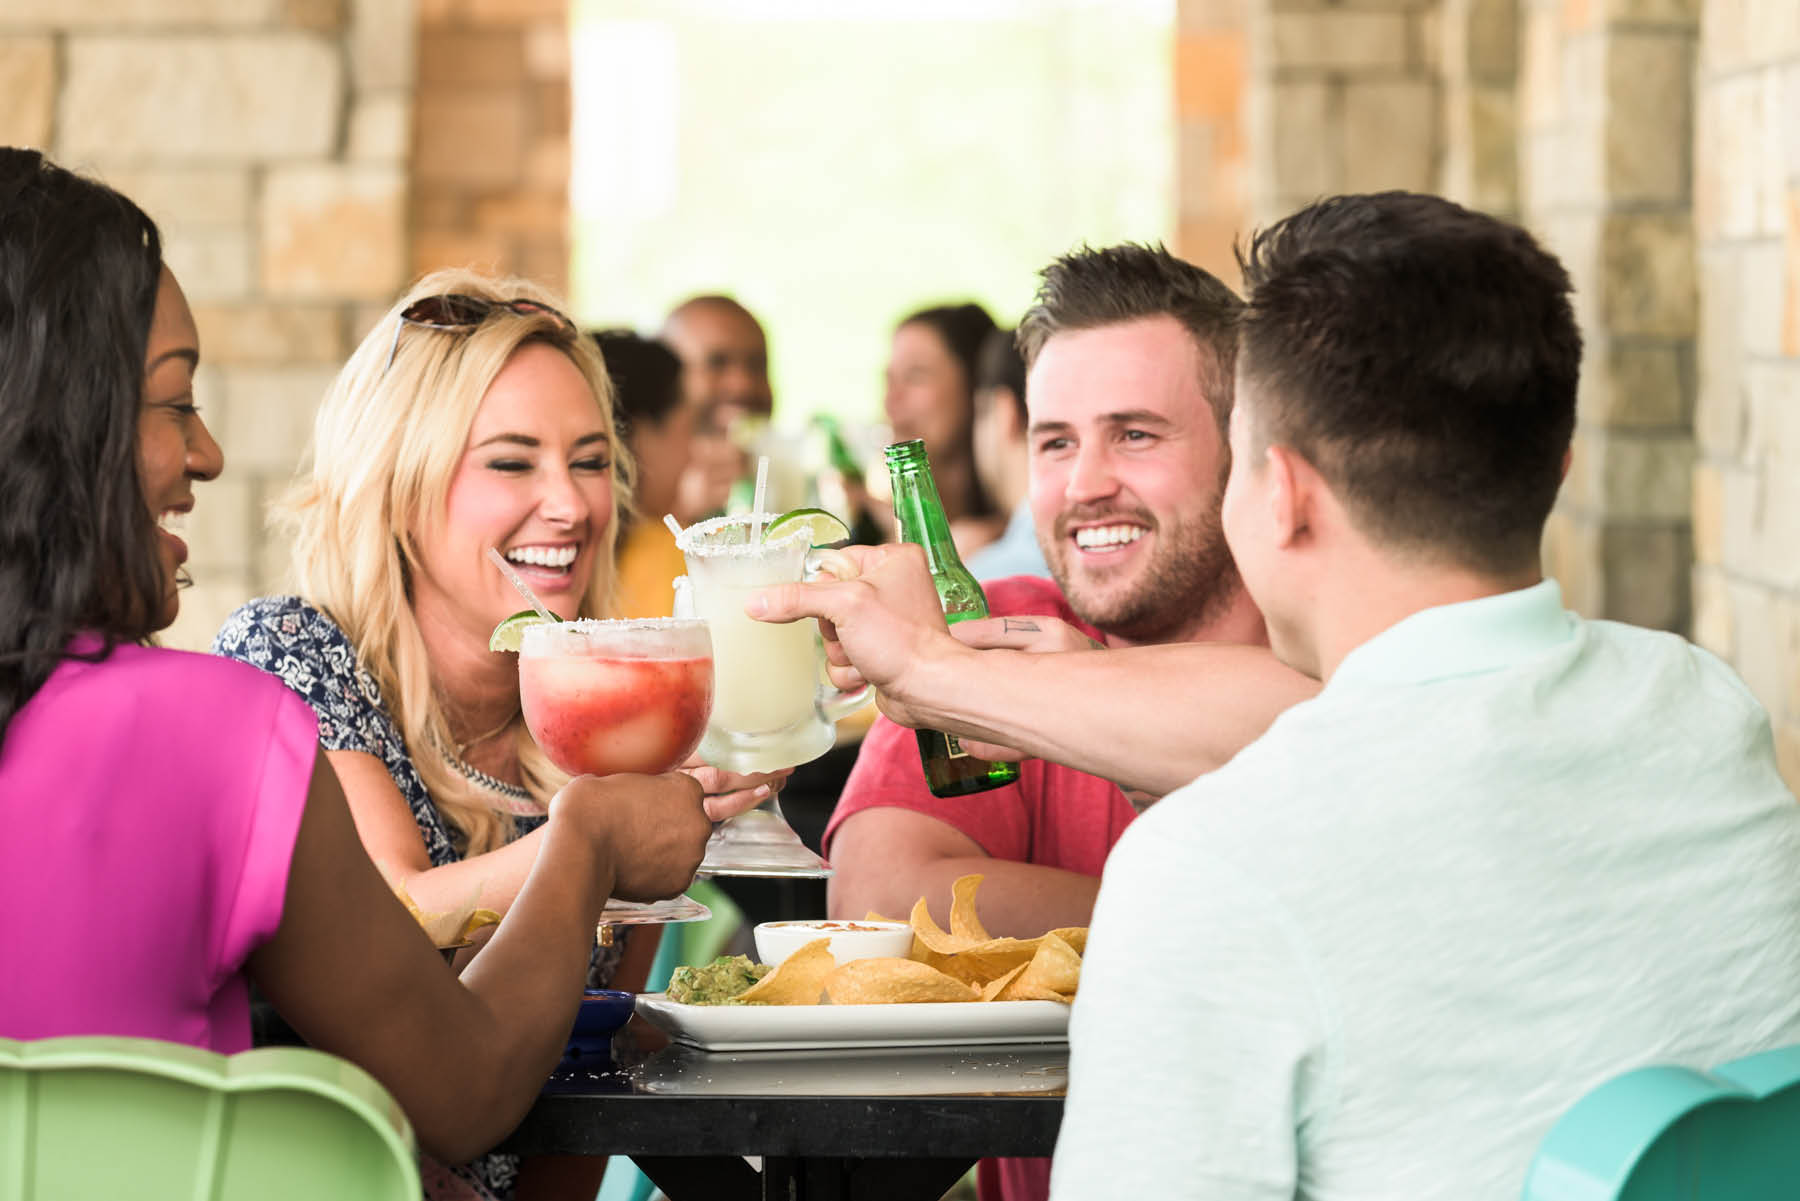 mexican food caterers cheap catering margarita specials near me family restaurants with chip & dip specials restaurants that serve margaritas margarita drinks near me margarita day specials margarita happy hour mexican grill mexican food mexican taco